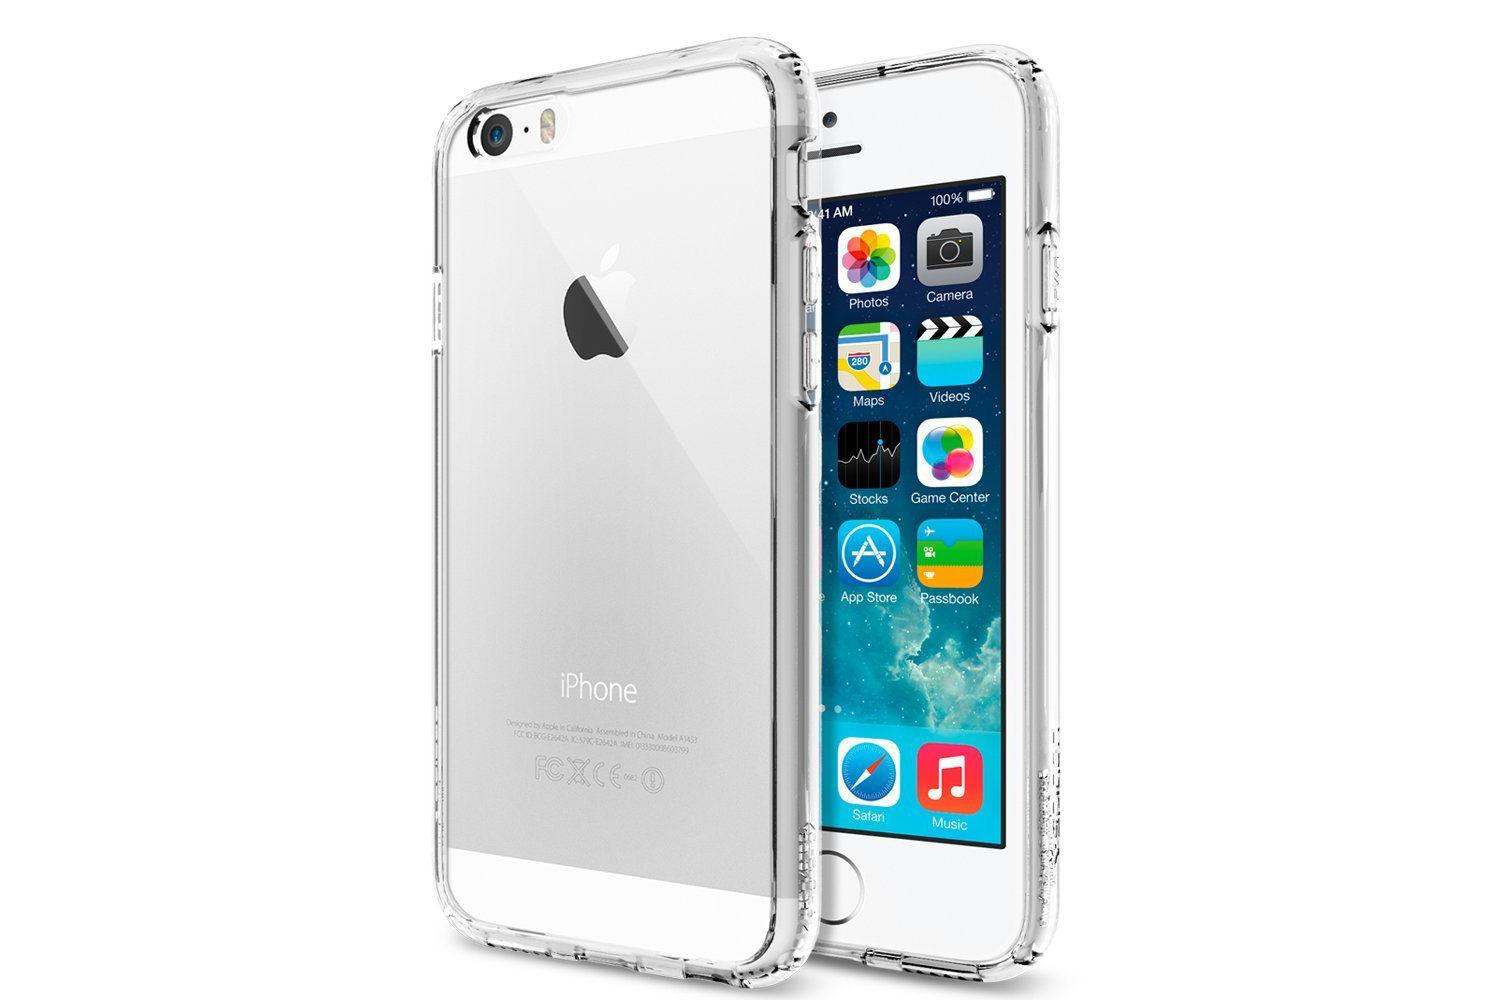 iPhone 6: Top 10 Things You'll See On the Next iPhone ...